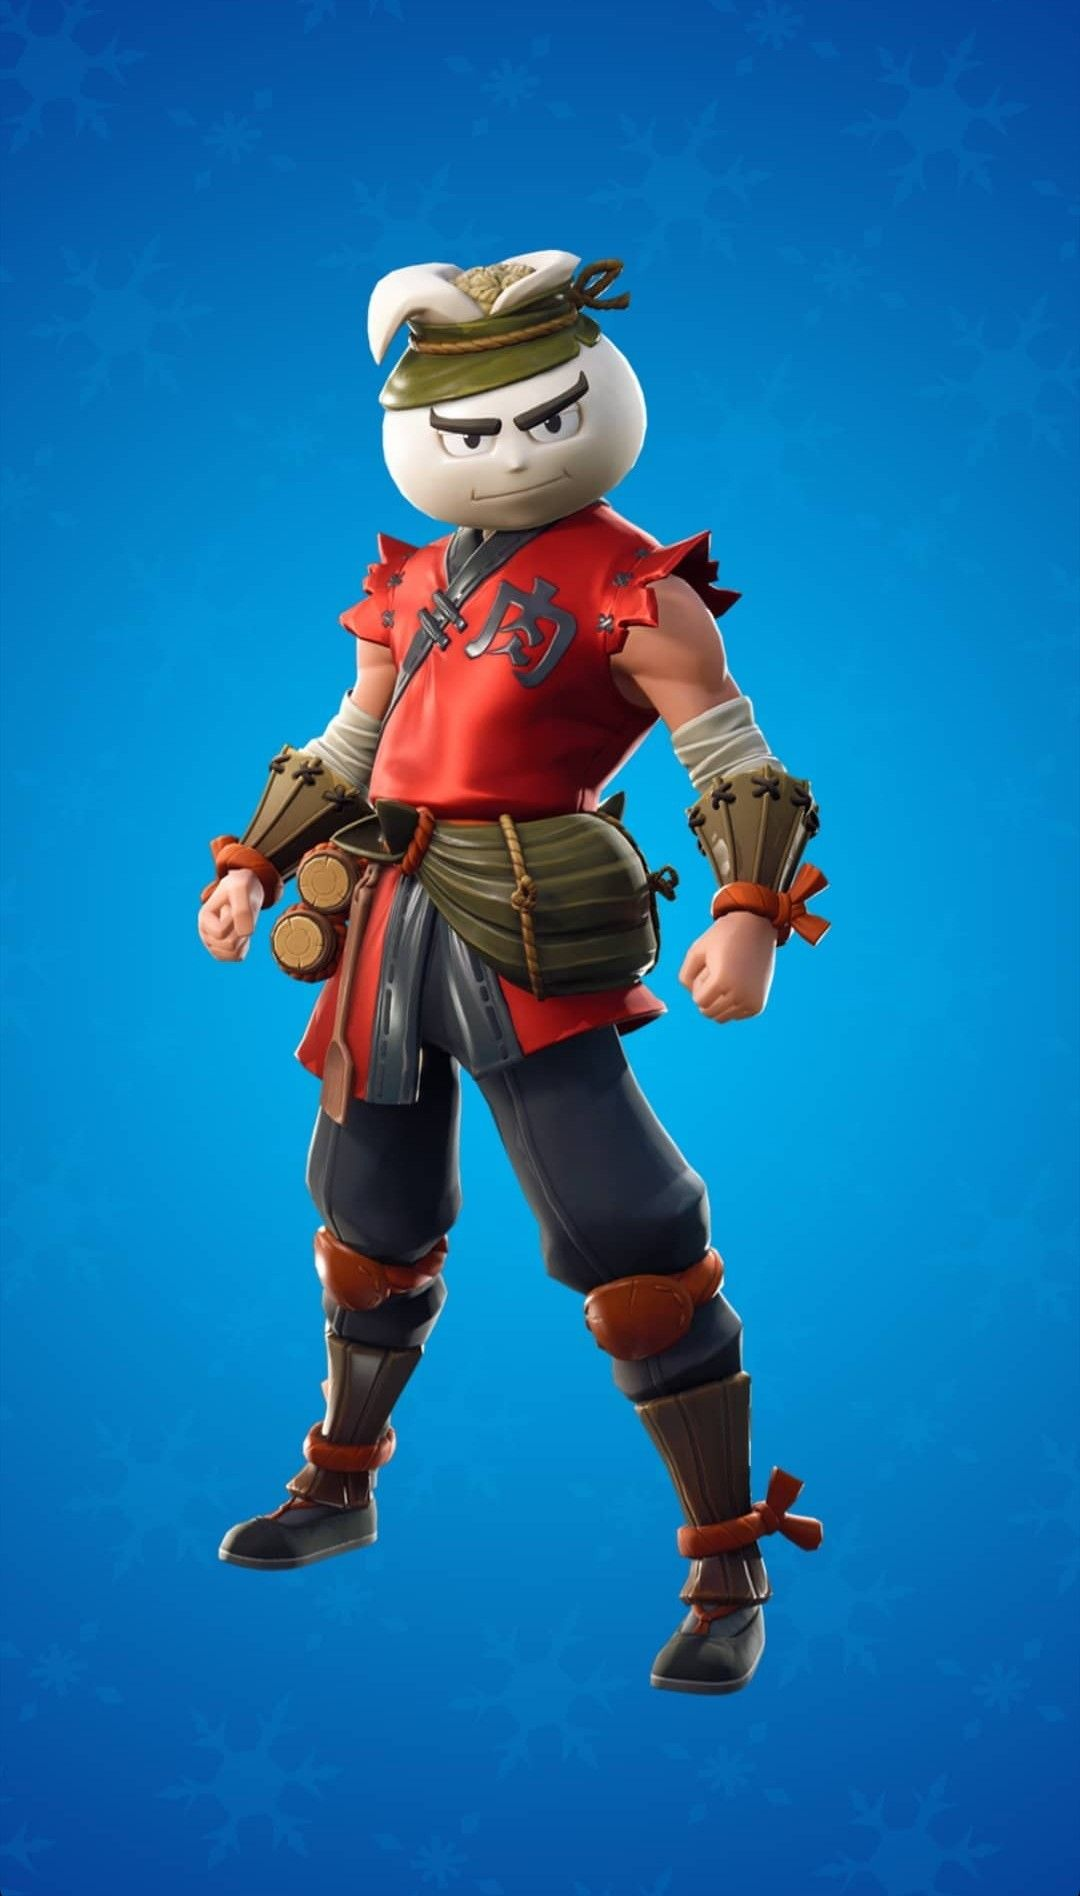 Pin By Diego Alejandro On Fortnite Skin Images Fortnite Epic Games